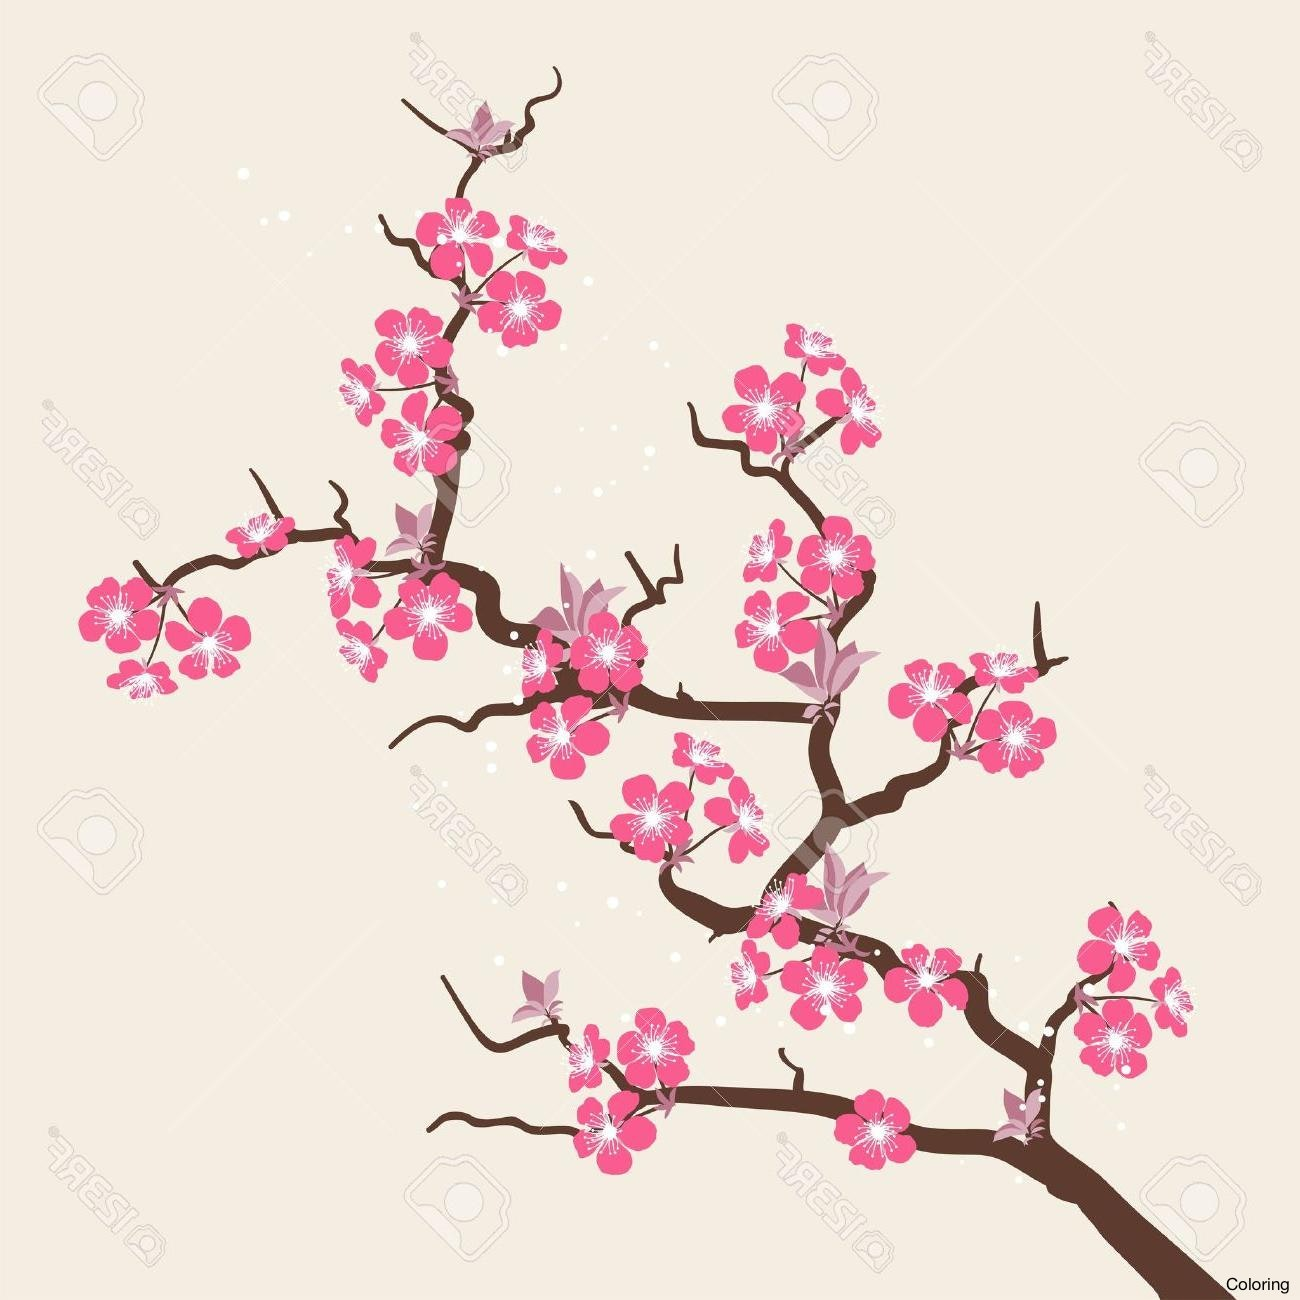 cherry blossom flowers drawing at getdrawings com free for